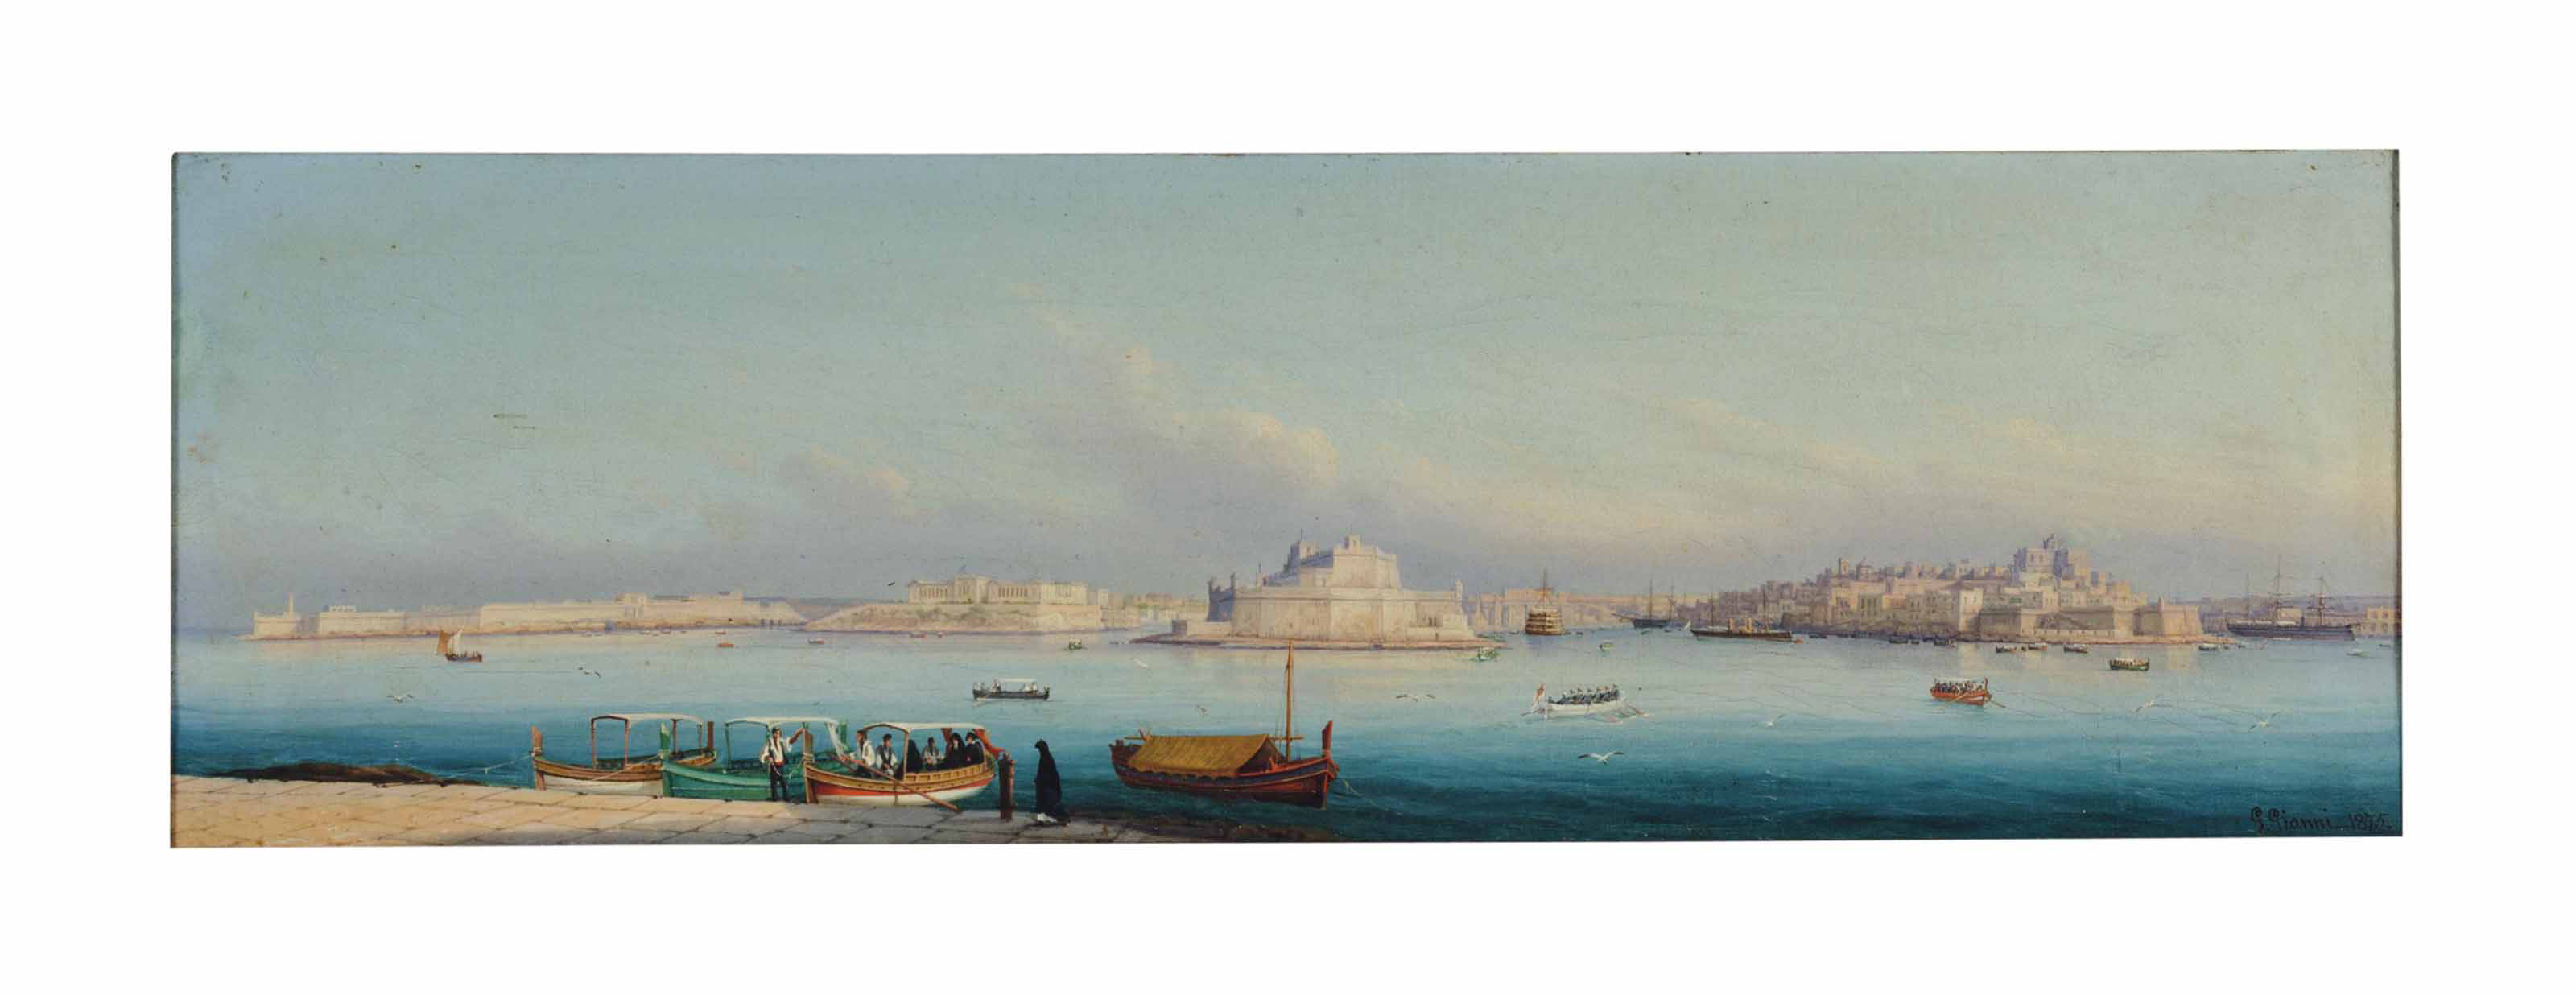 Views of the Grand Harbor, Malta: Two works